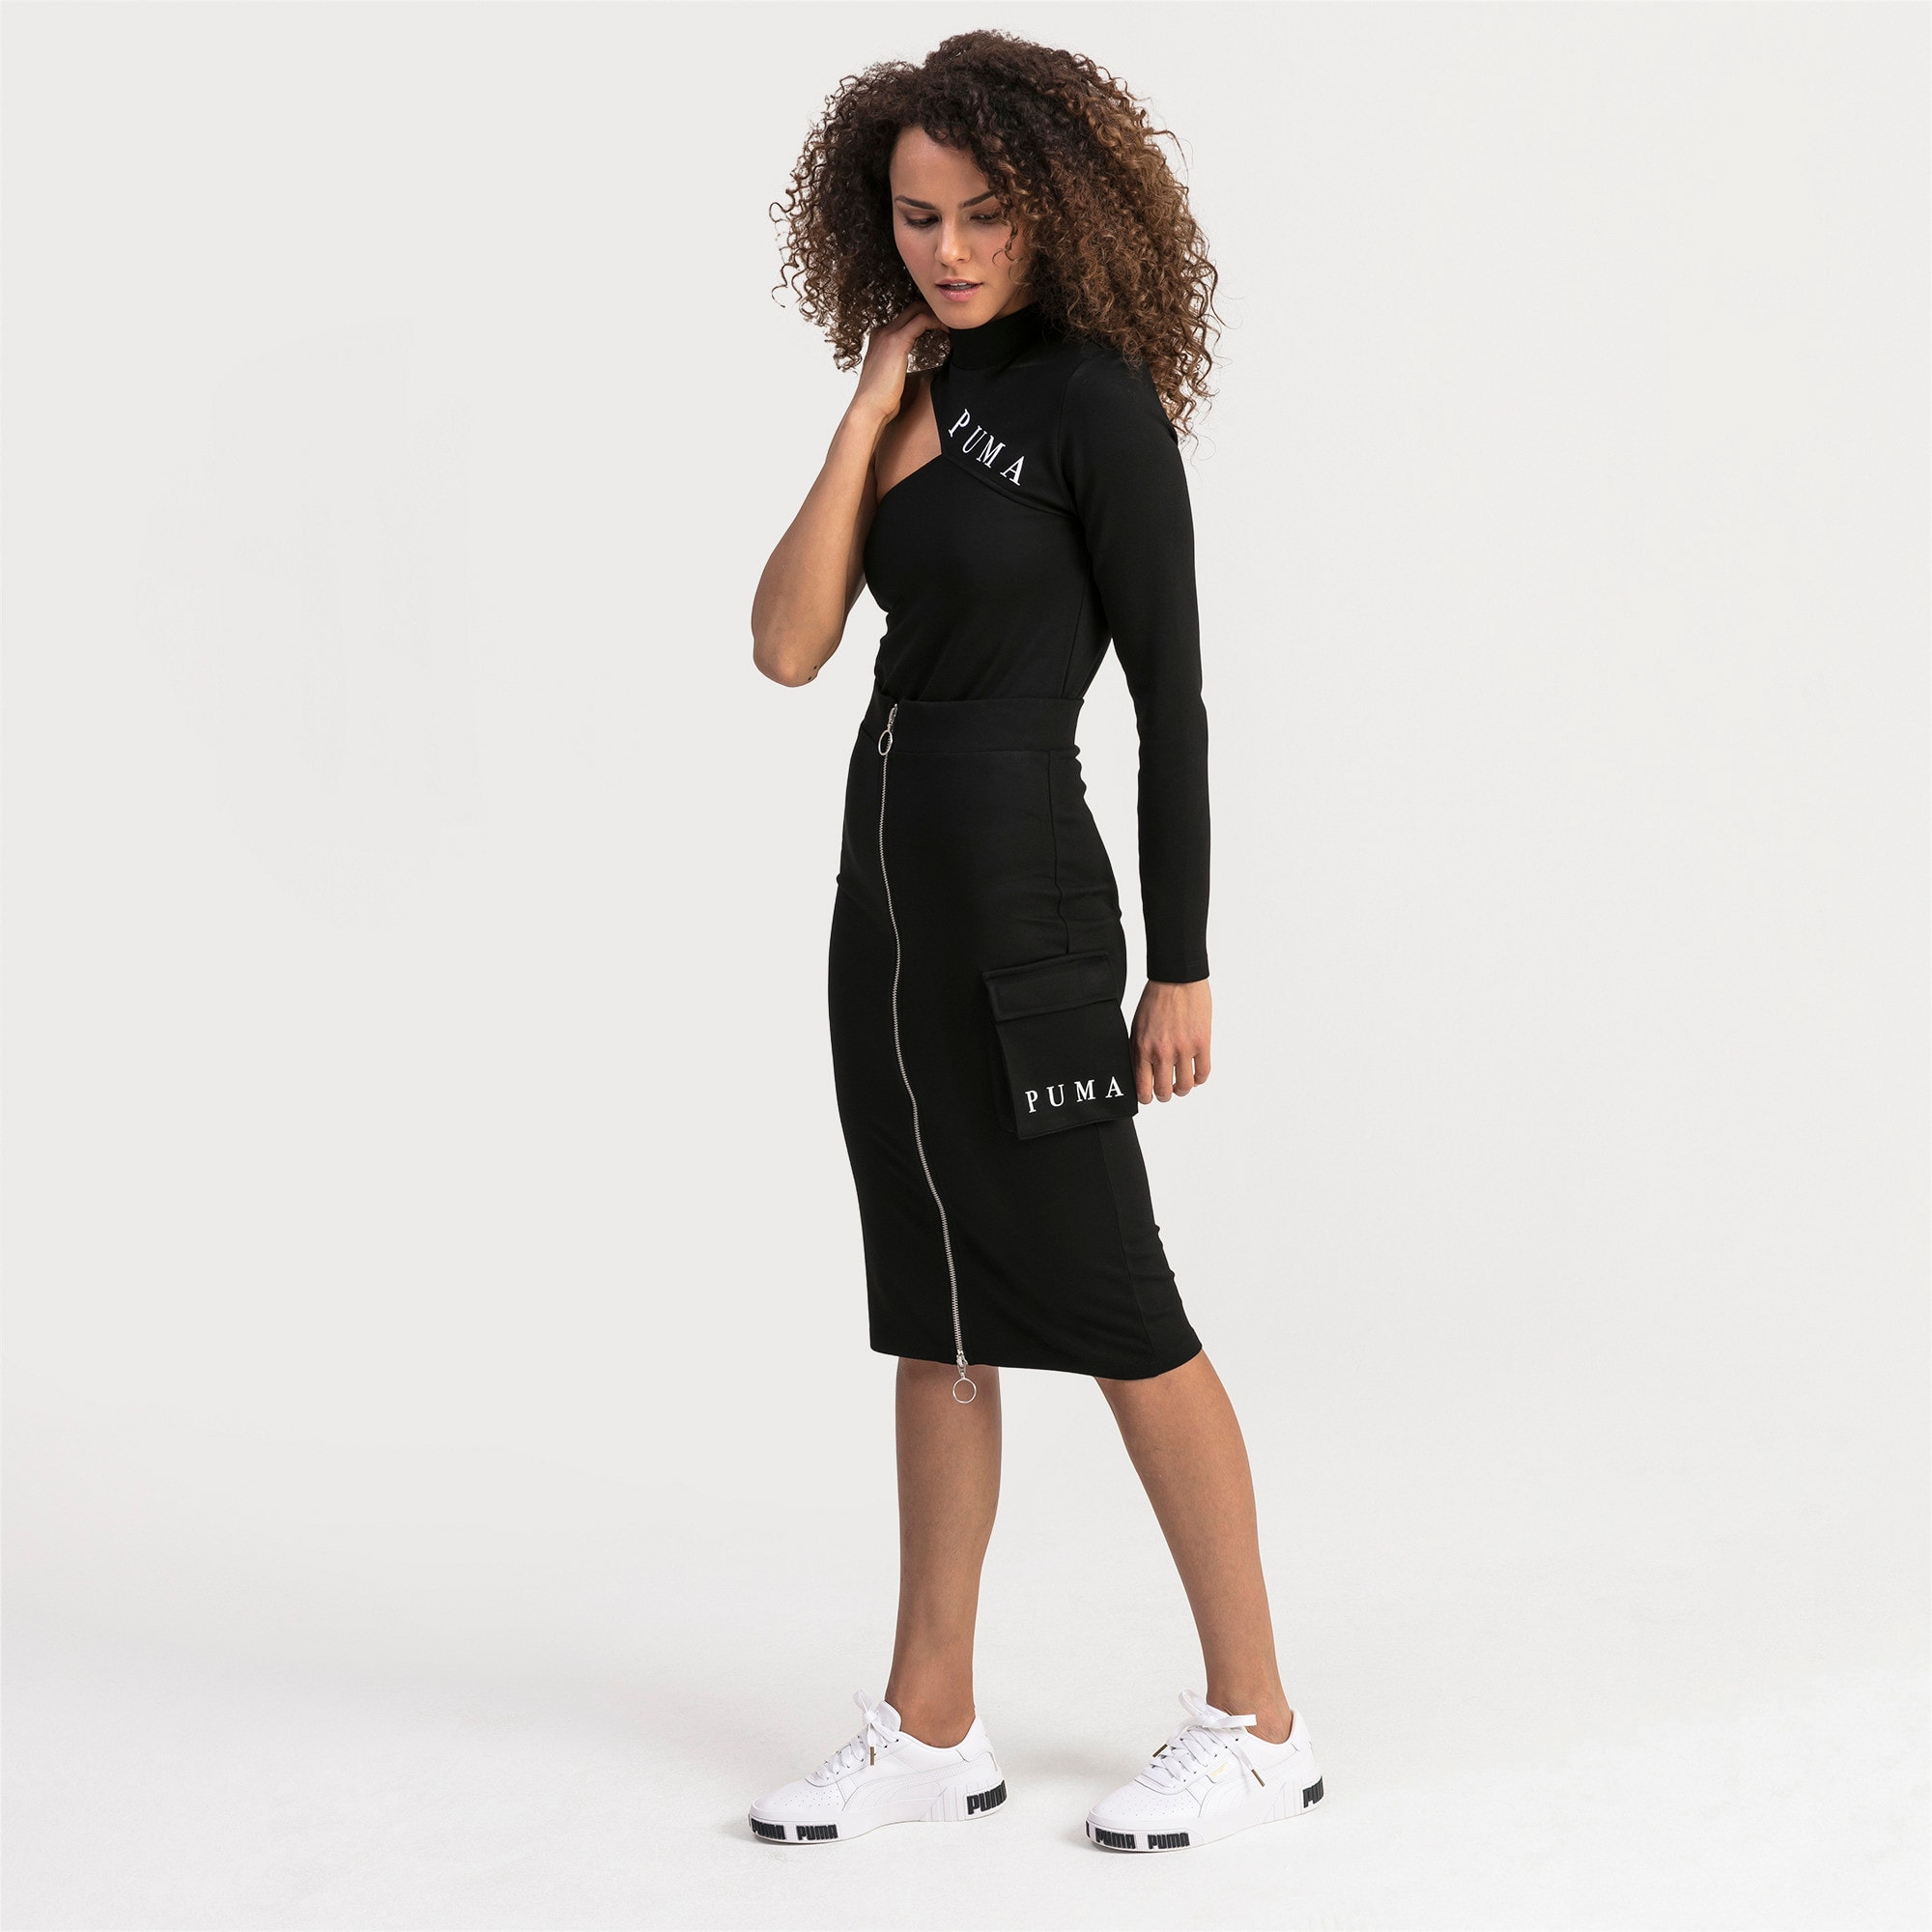 Thumbnail 1 of Damen Midi Rock, Puma Black, medium